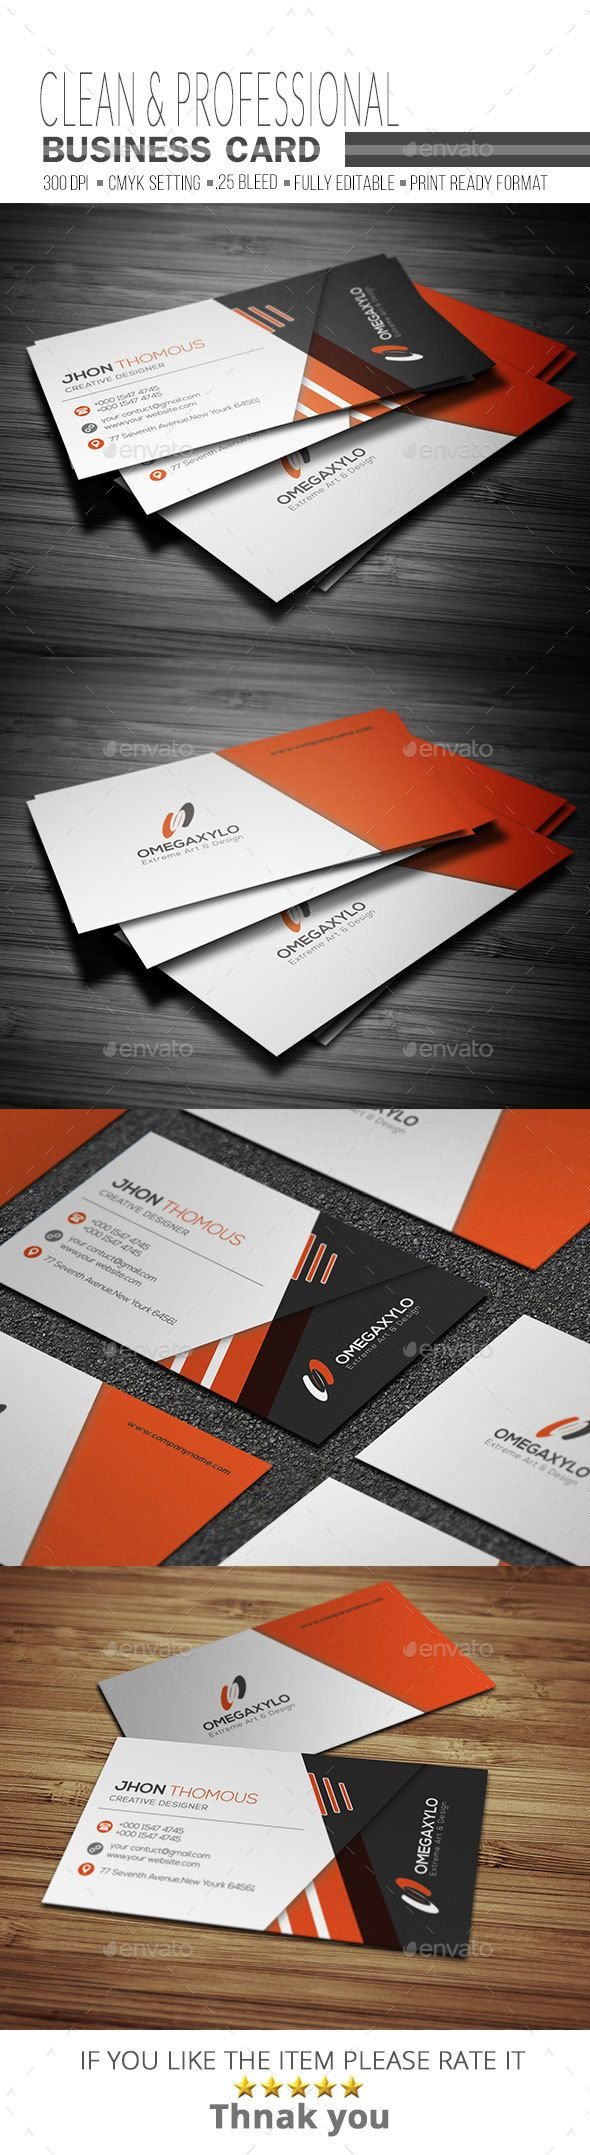 Corporate Business Card Template PSD. Download here: https://graphicriver.net/item/corporate-business-card/17624739?ref=ksioks